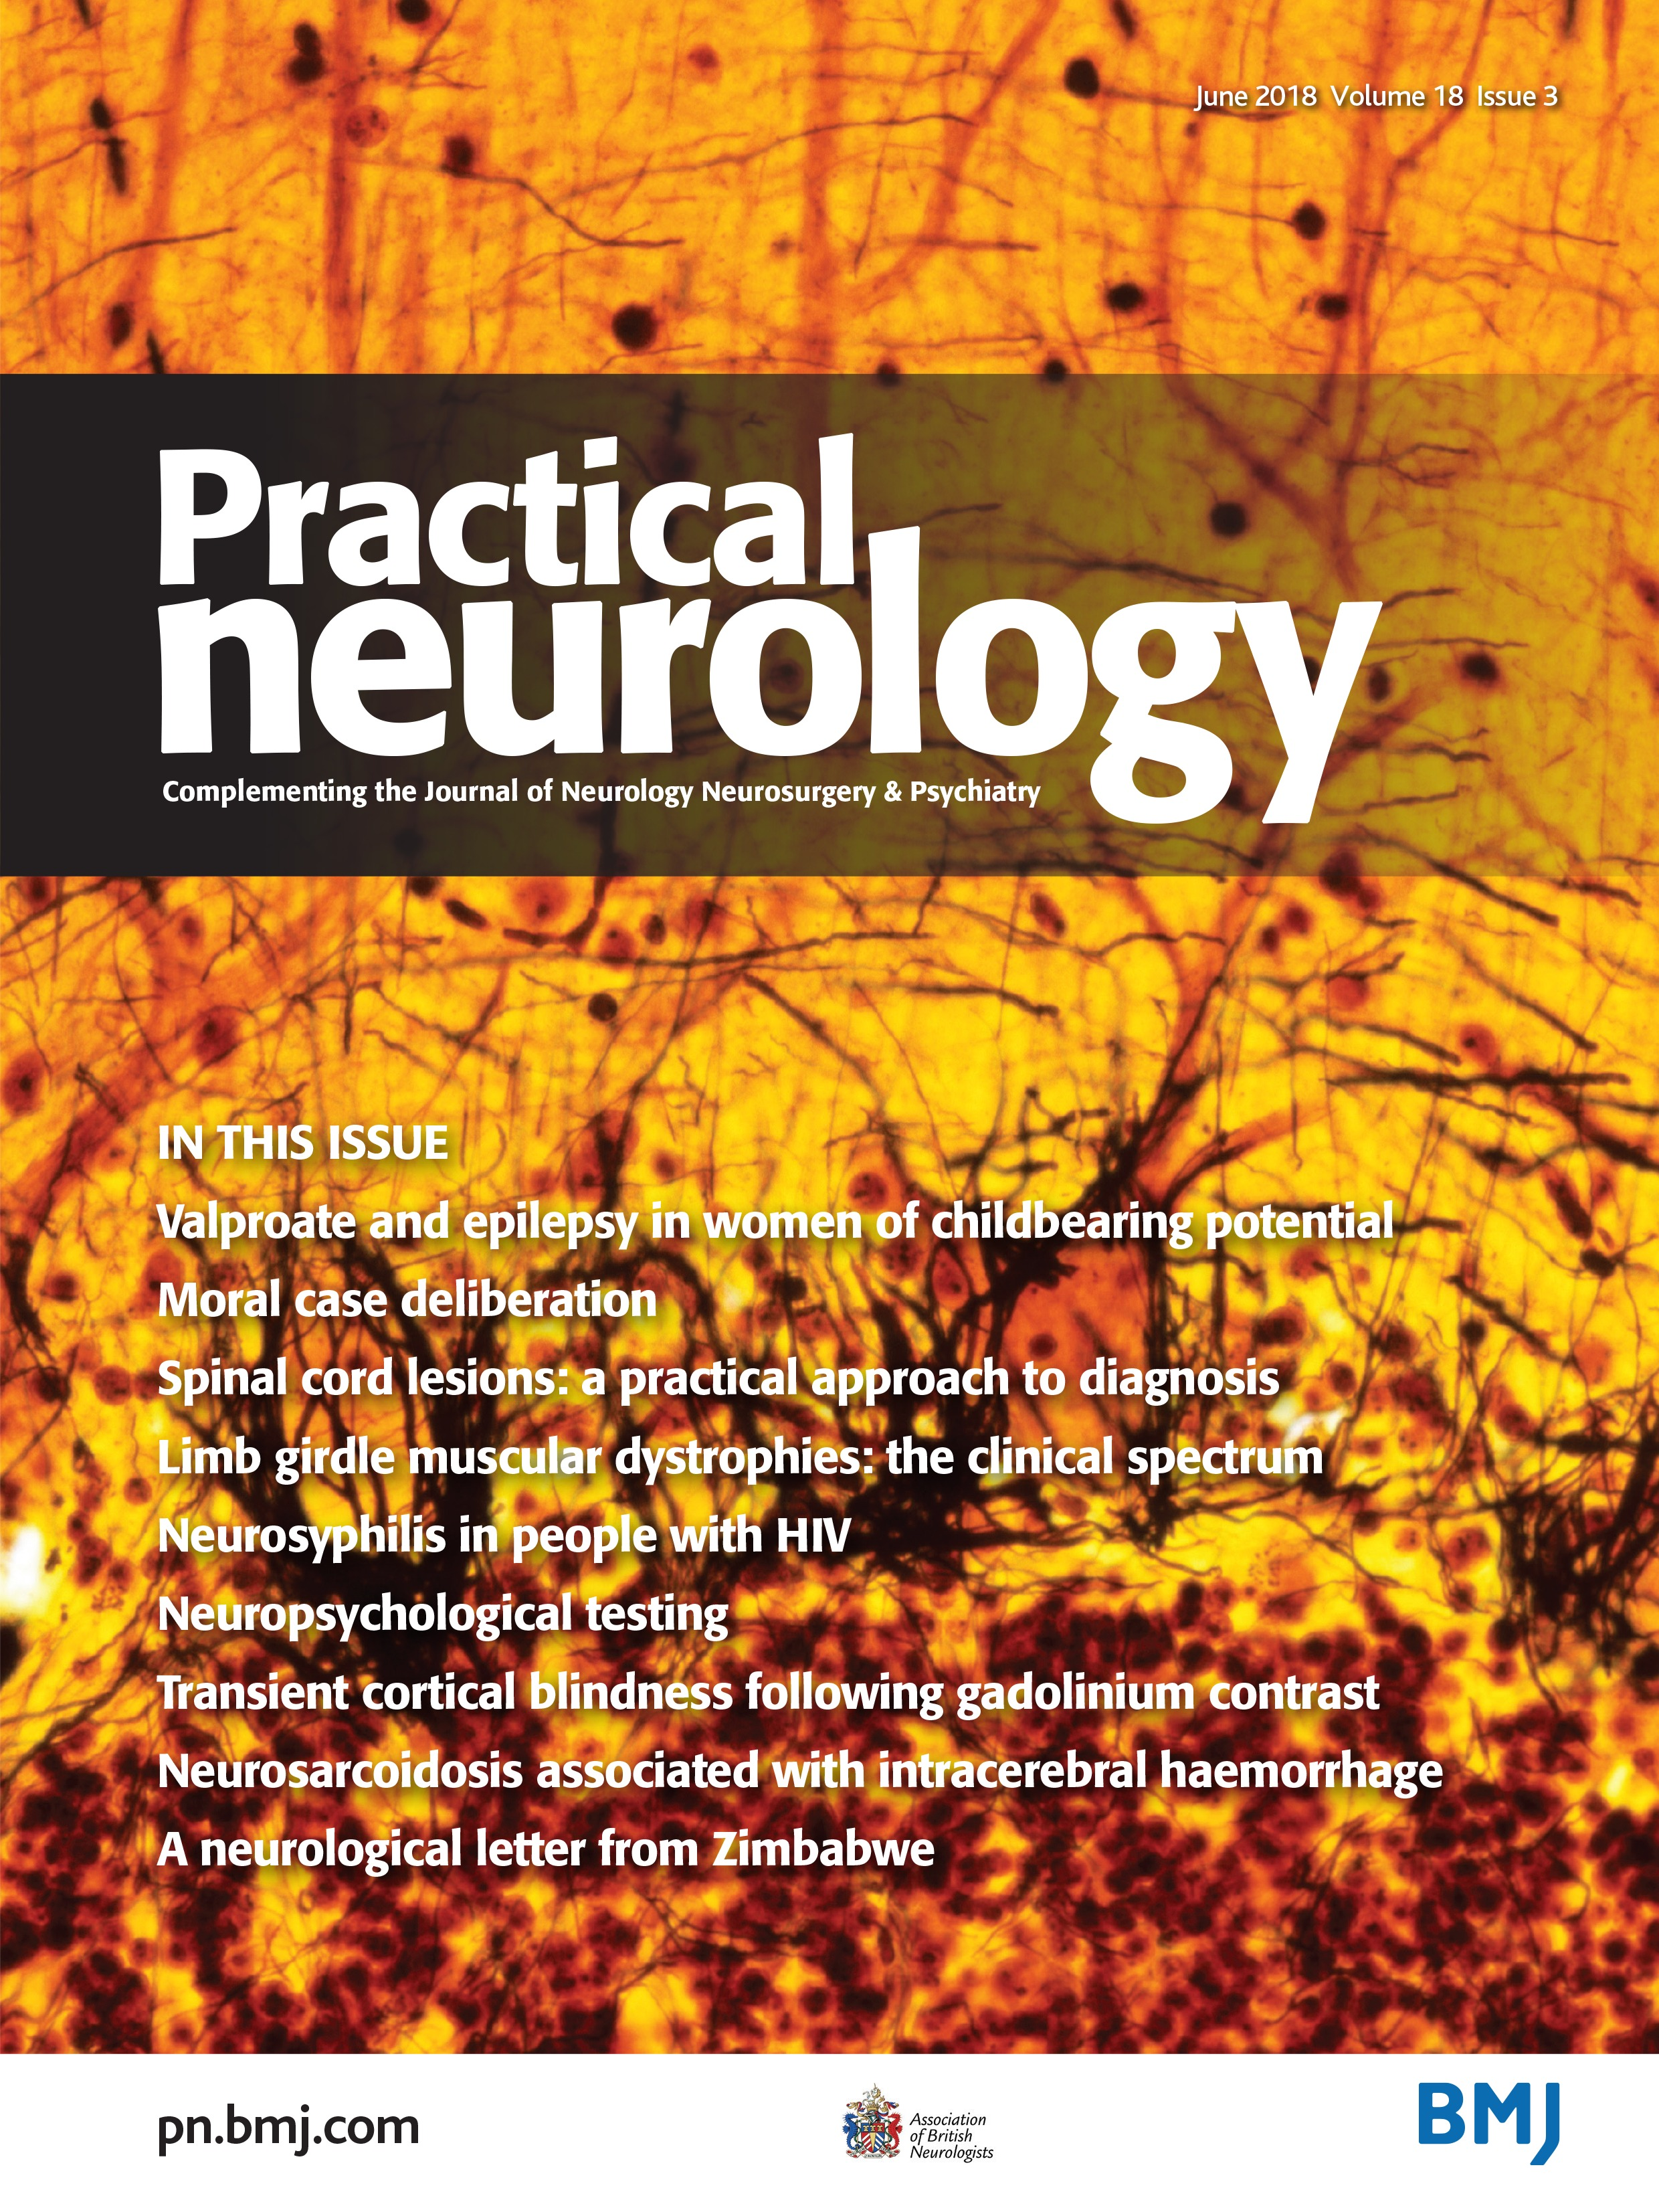 2c1805d87 Valproate and epilepsy: for women as well as men | Practical Neurology